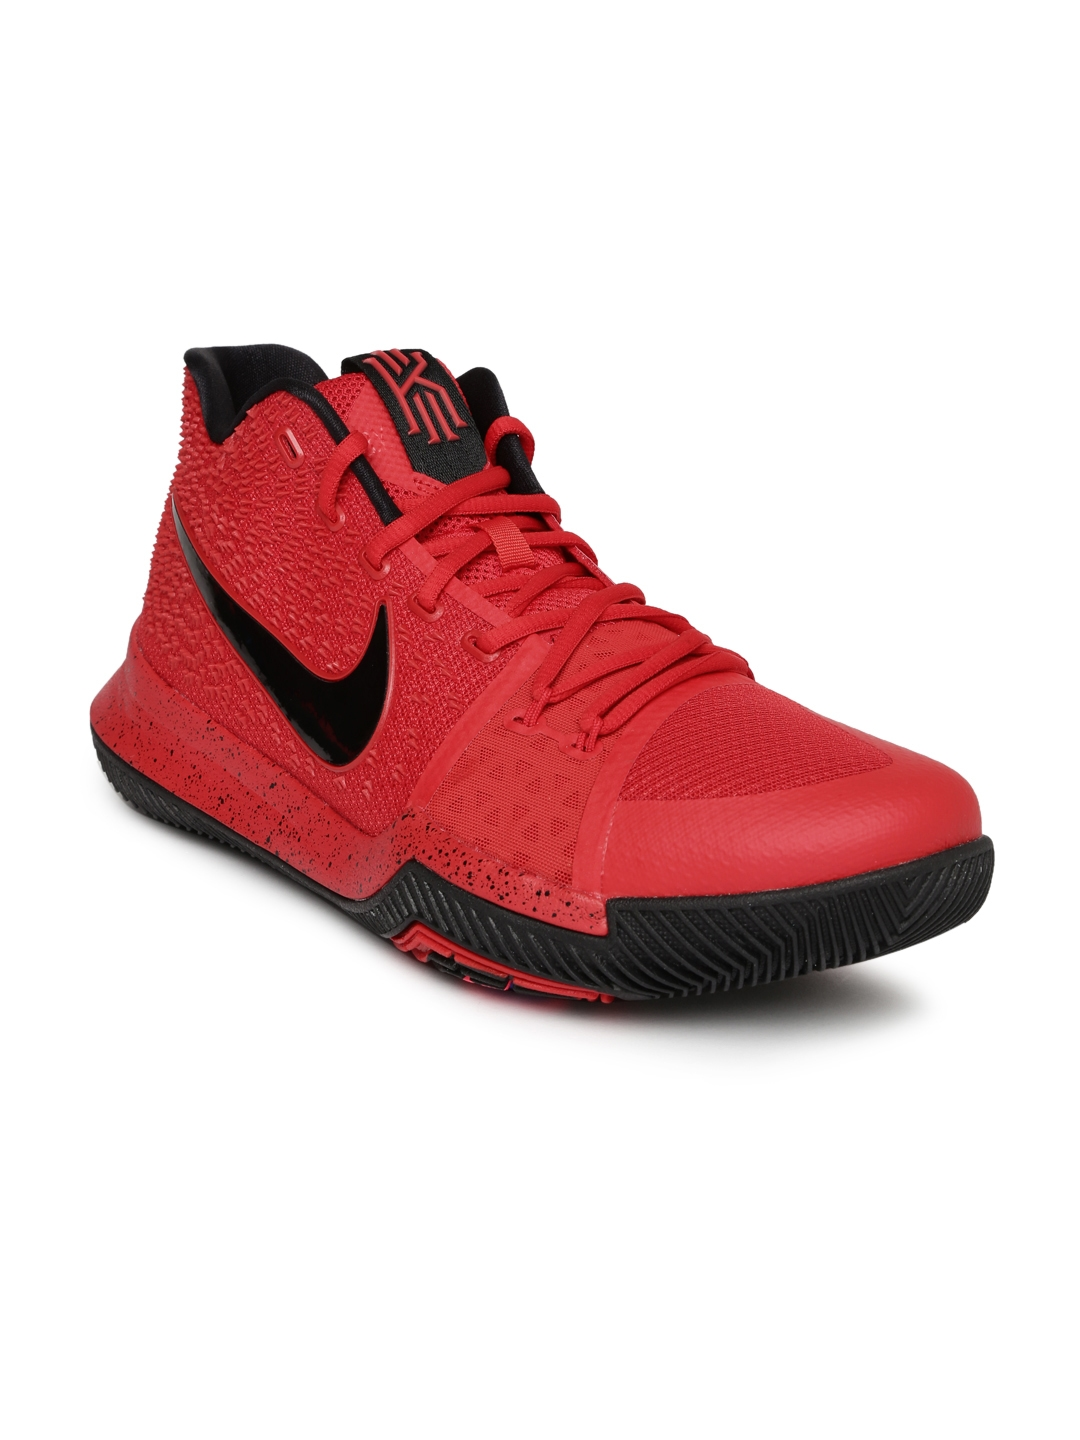 Nike Boys Prime Hype Df Basketball Shoes Red